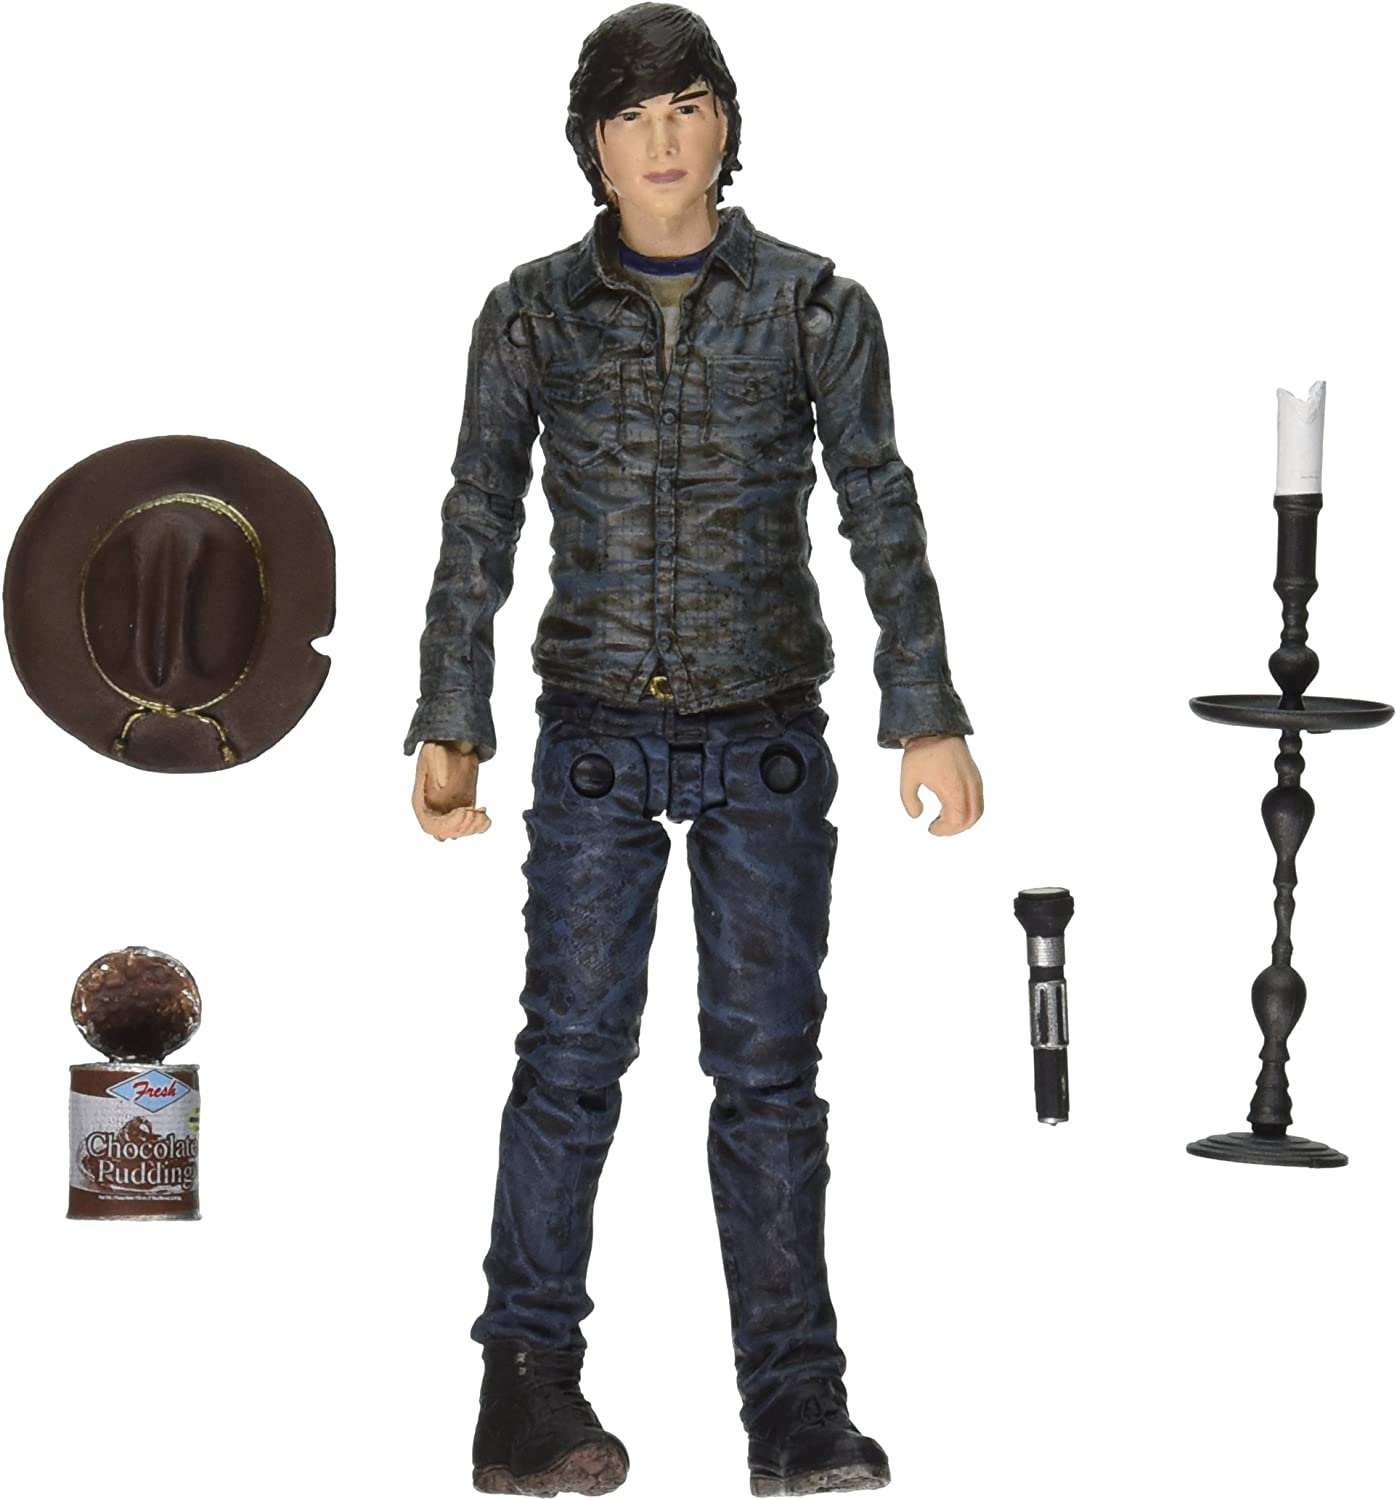 RICK GRIMES THE WALKING DEAD TV SERIES 7 MCFARLANE TOYS ACTION FIGURE